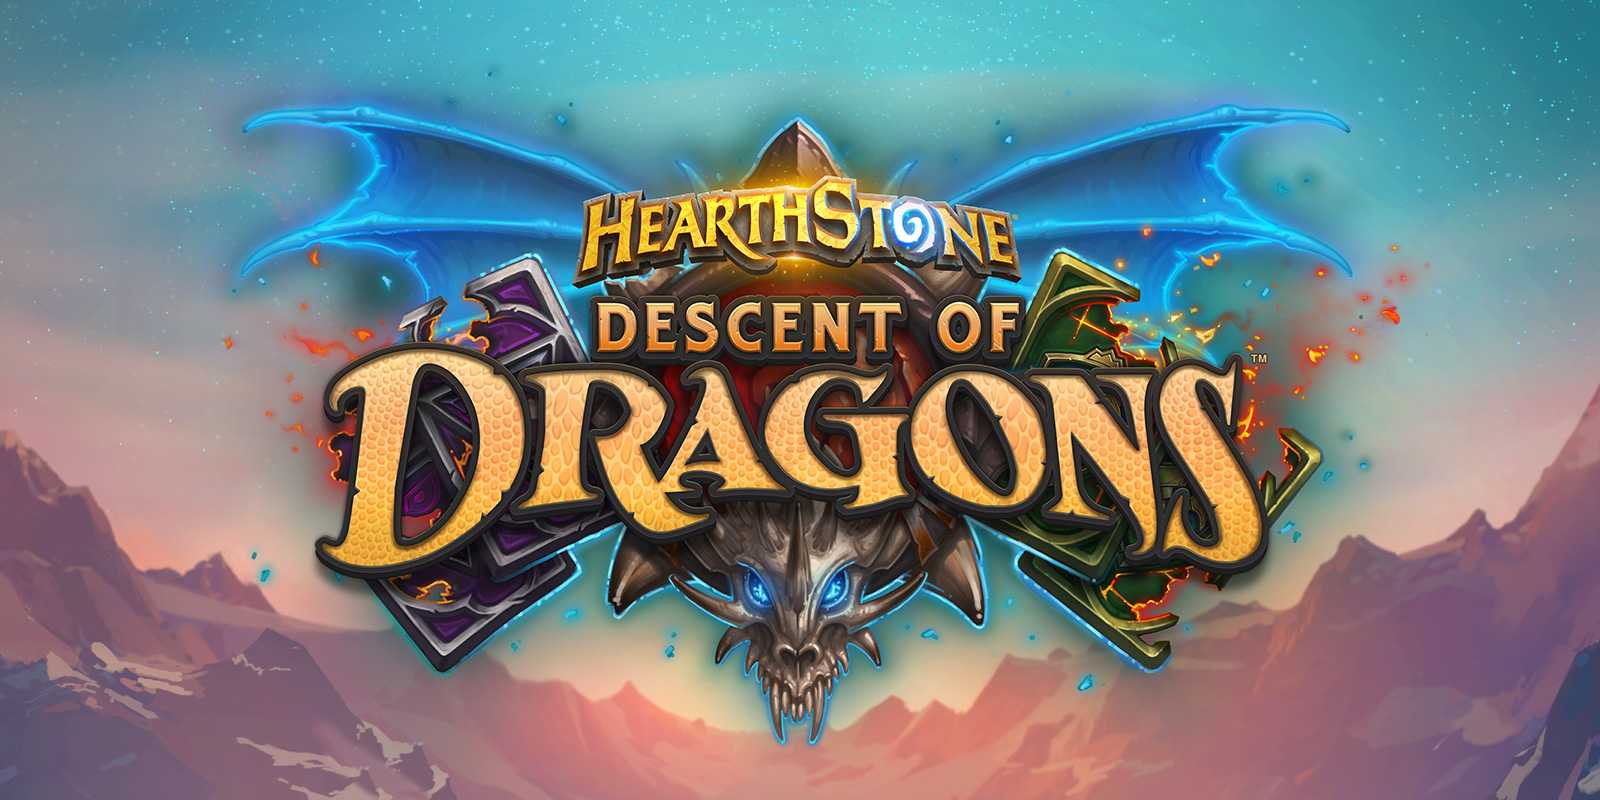 Update: Hearthstone's New expansion - It's all about dragons